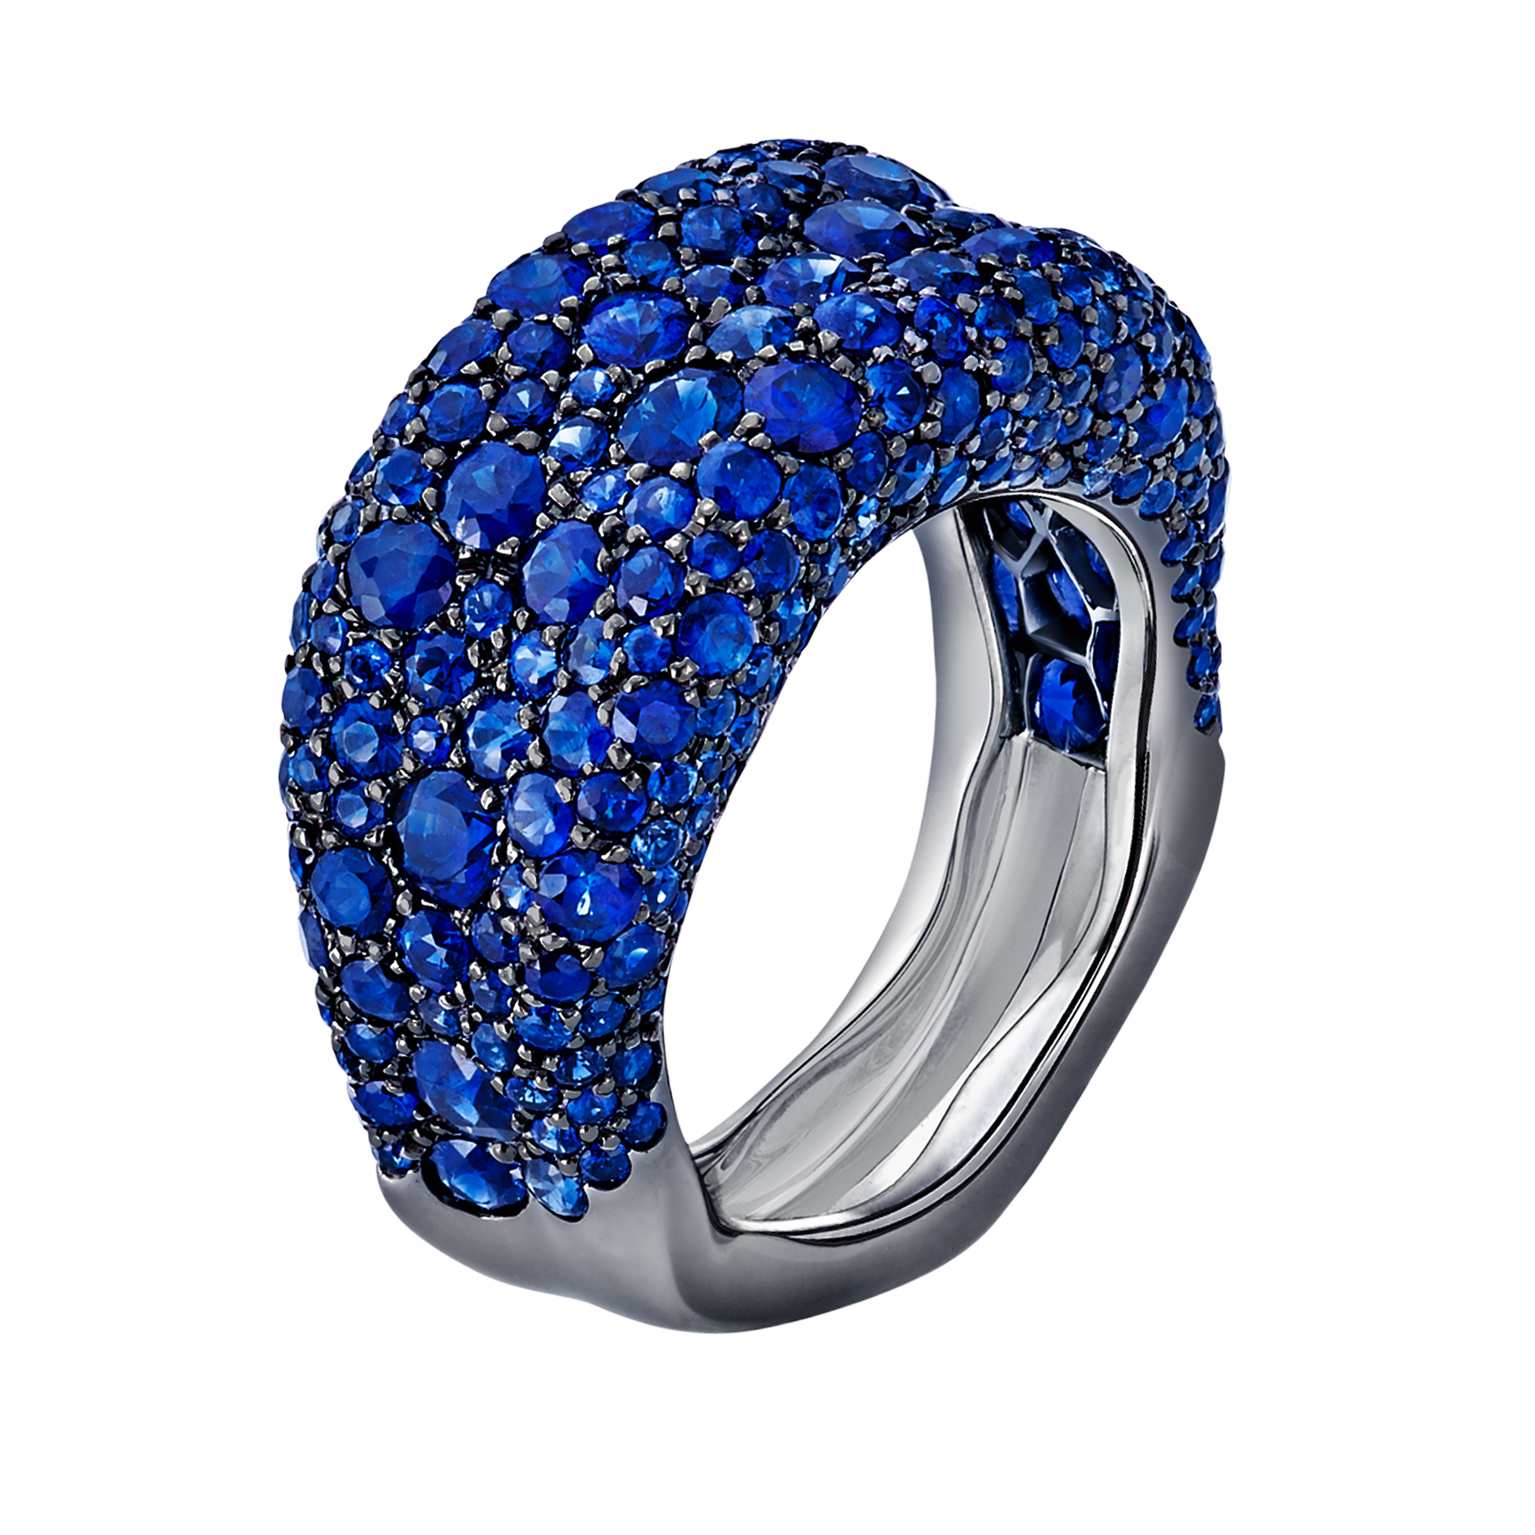 3.2 Fabergé Emotion Sapphire Thin Ring